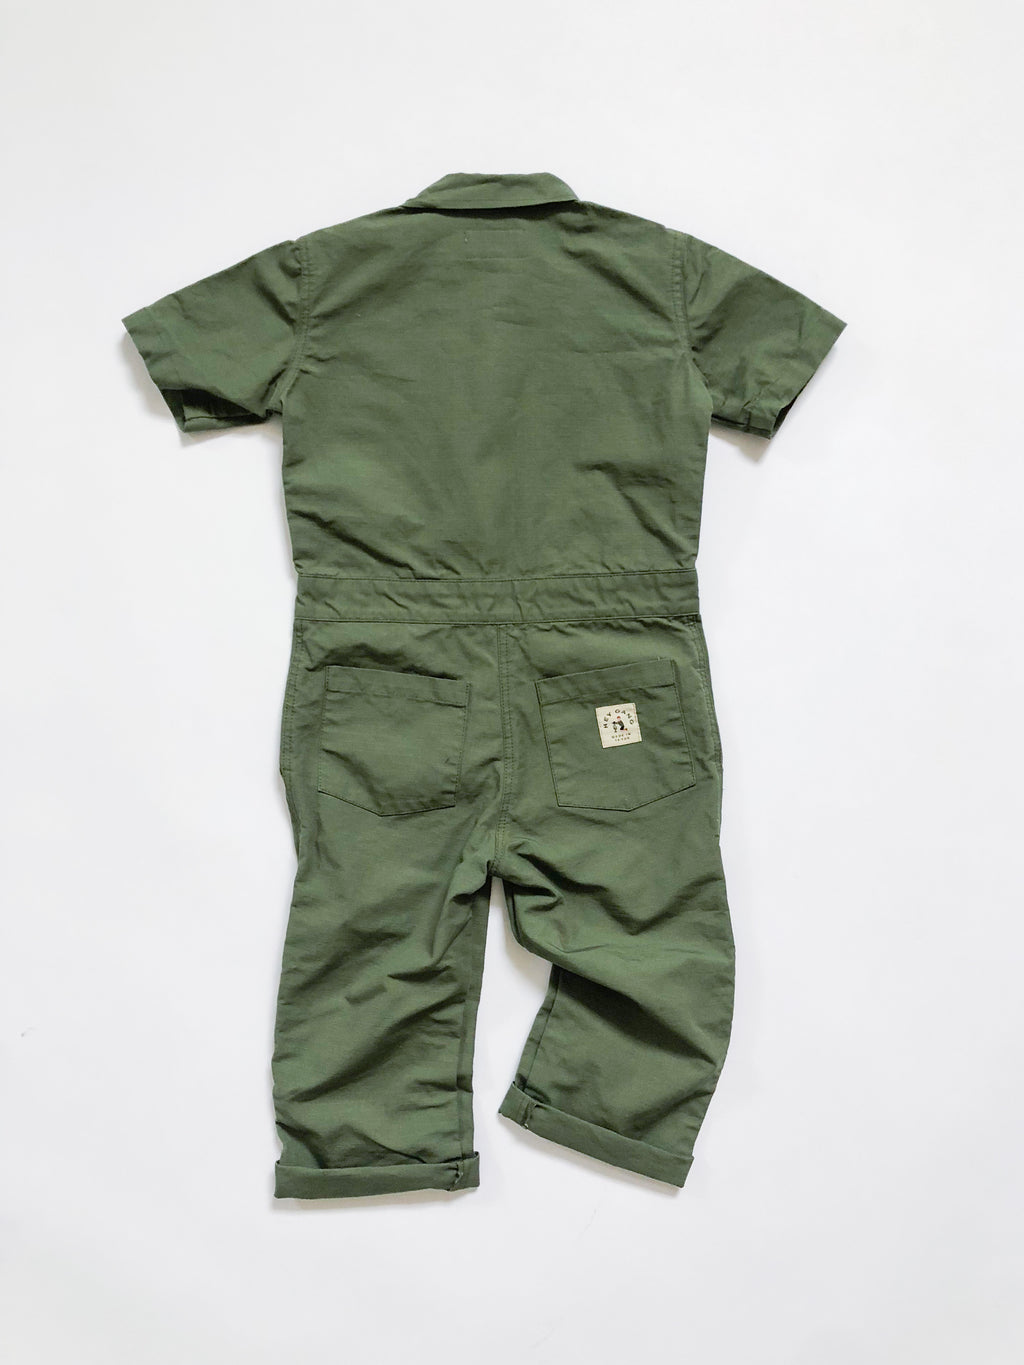 The Coverall Army